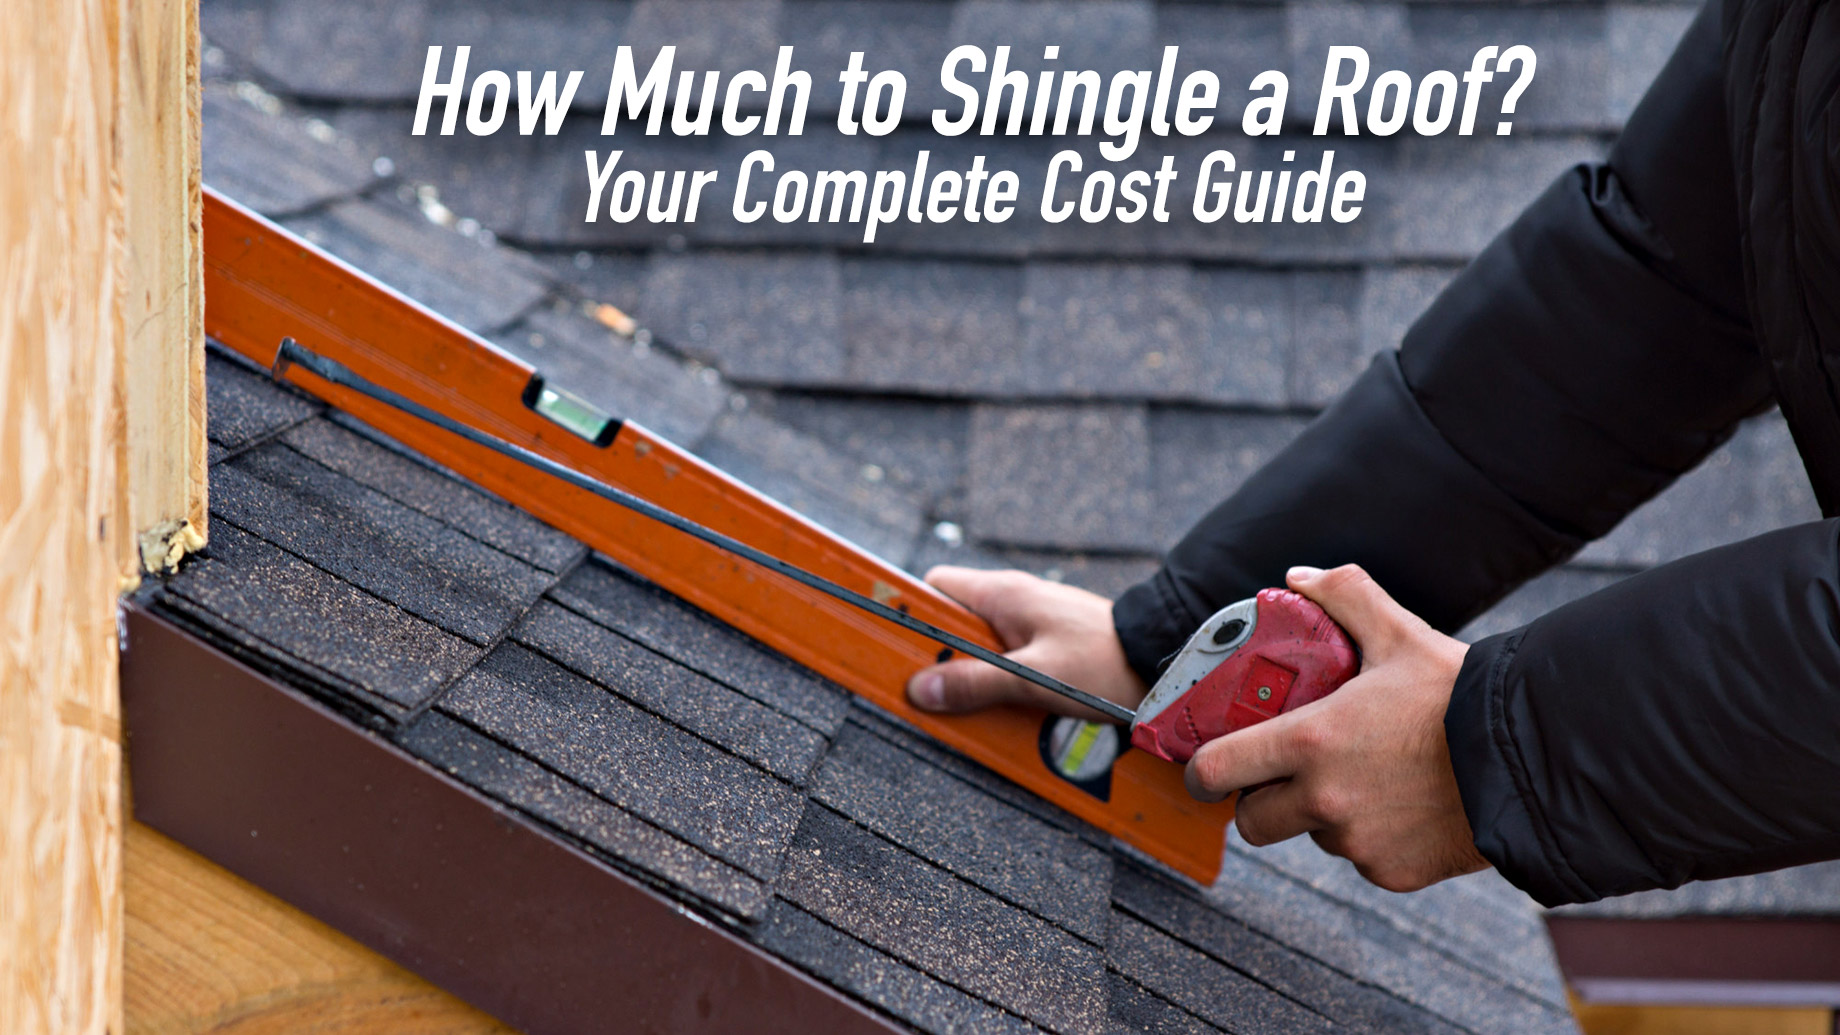 How Much to Shingle a Roof? Your Complete Cost Guide